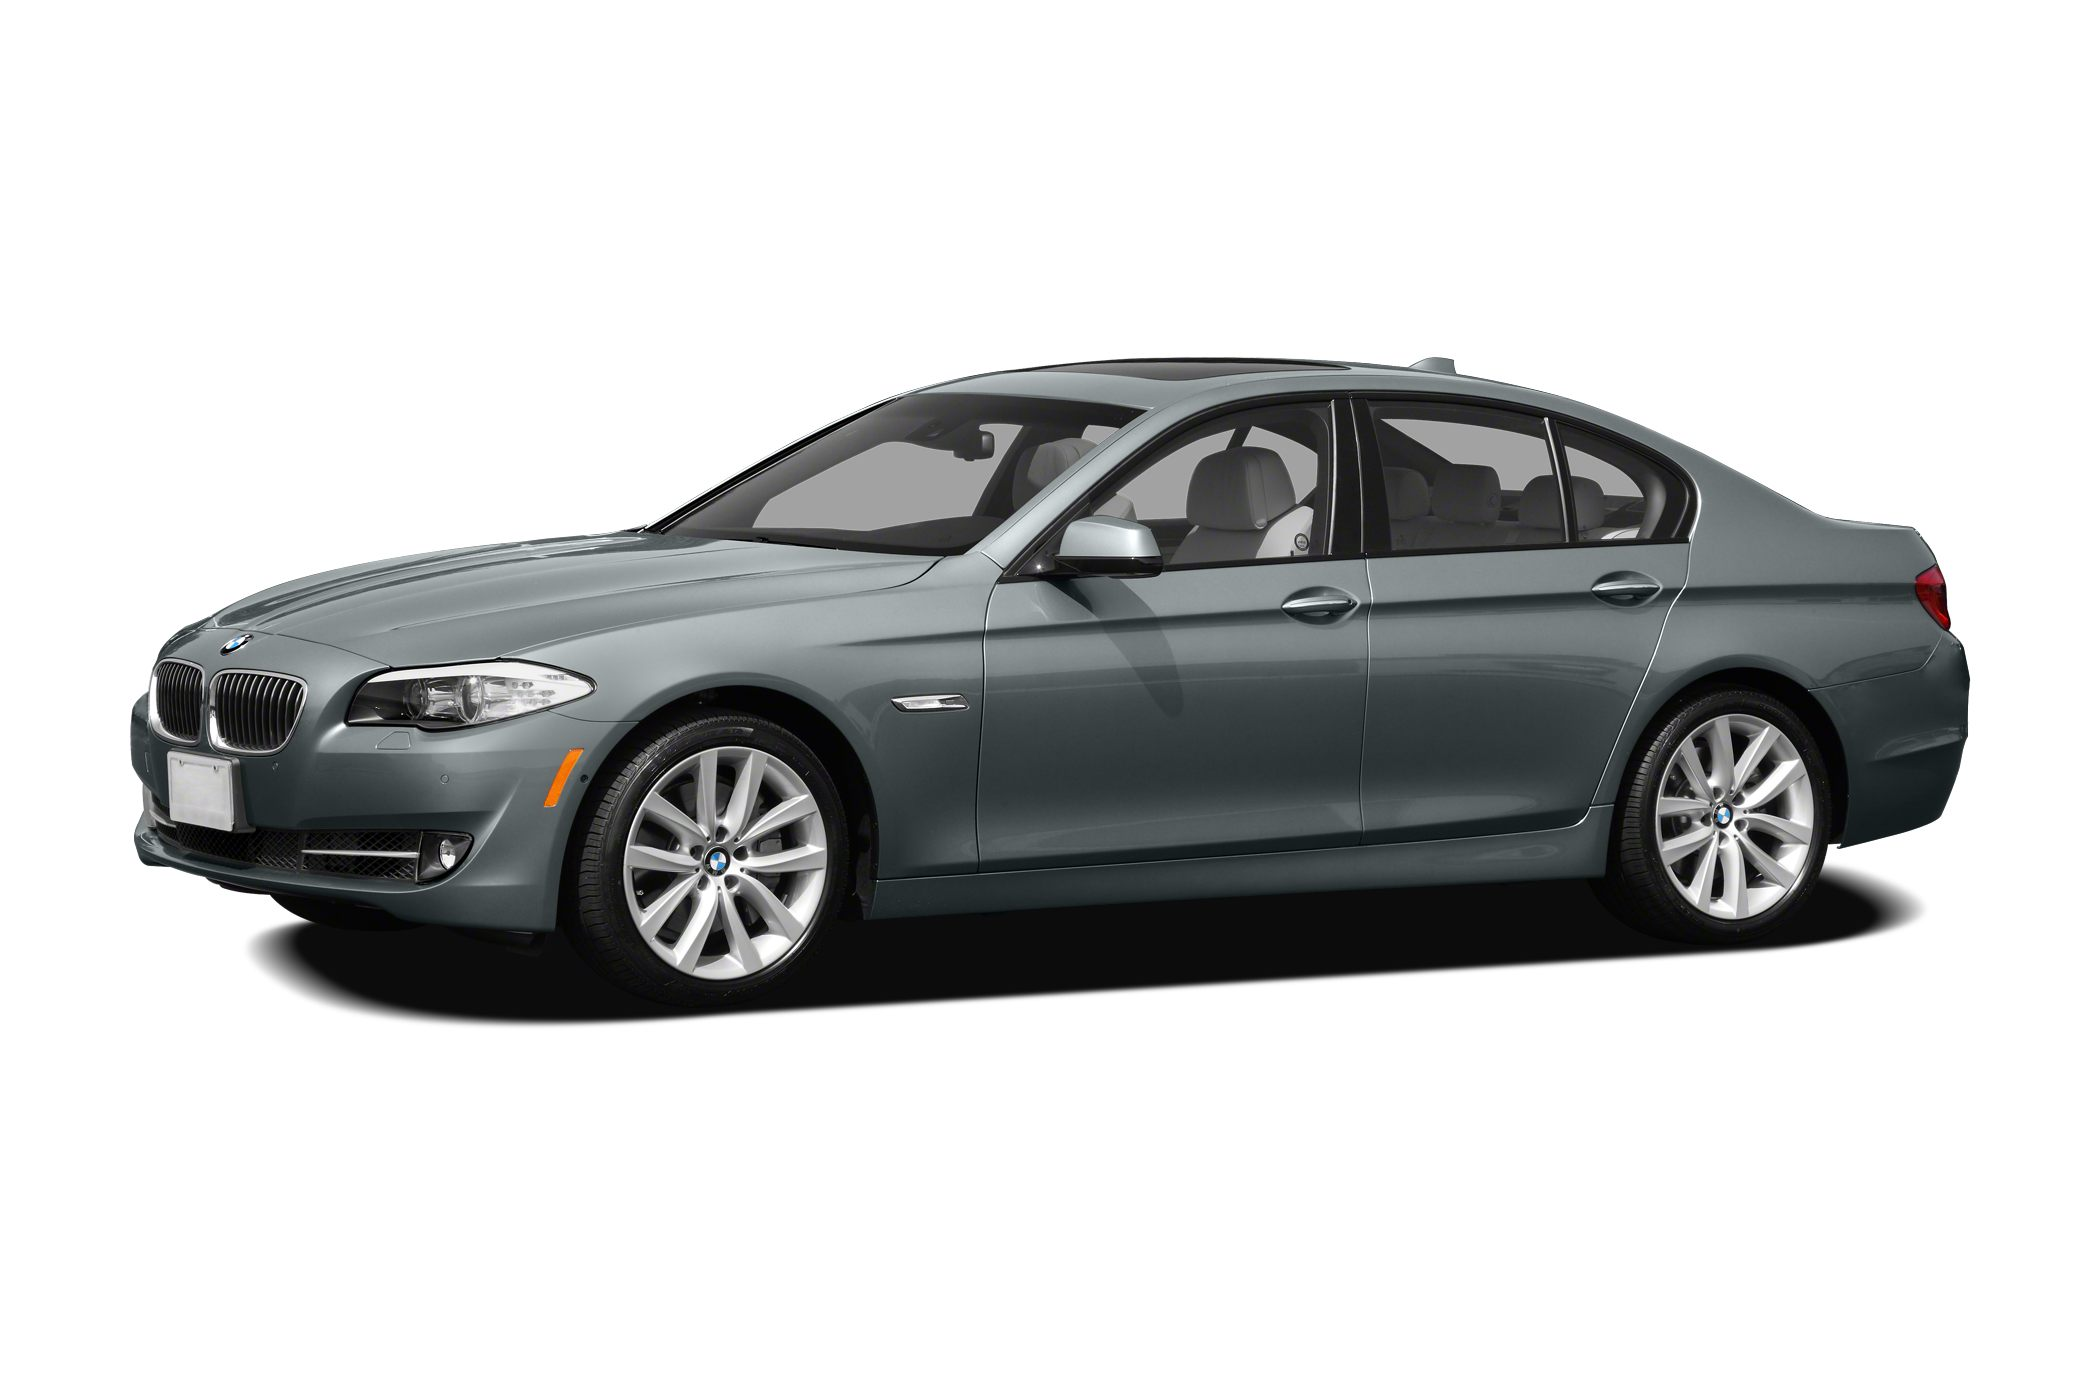 2012 BMW 528